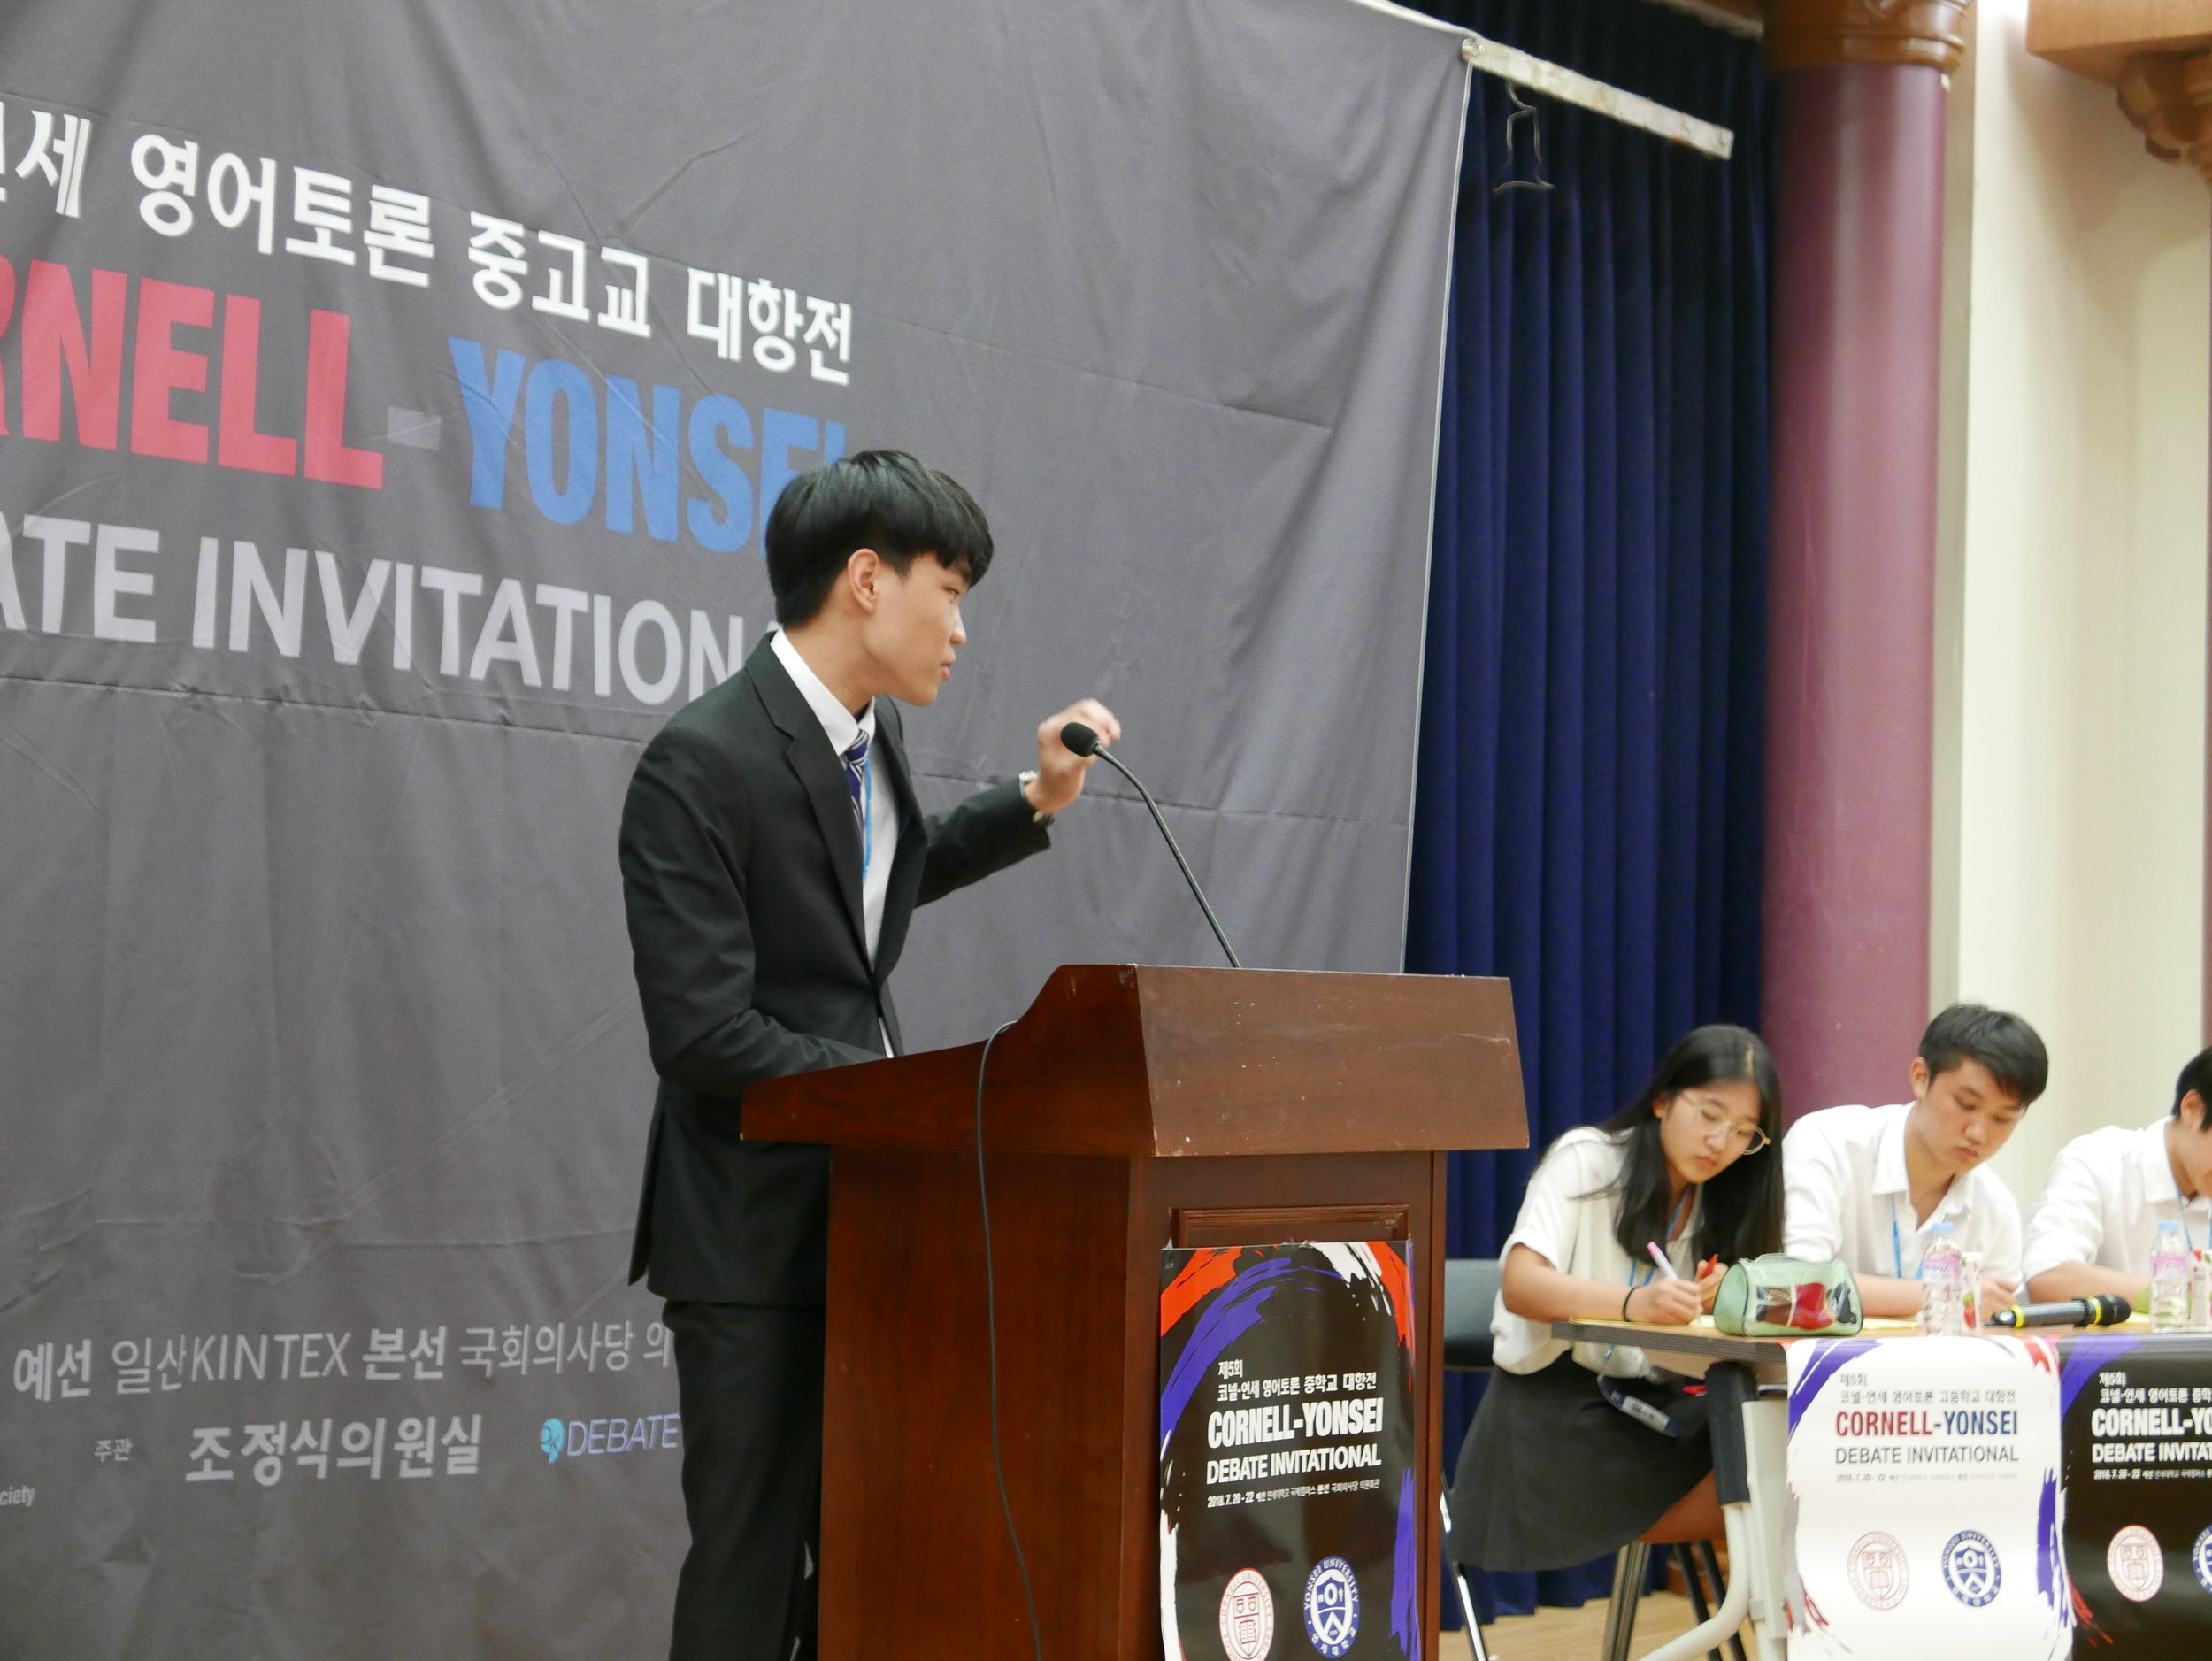 High School - 6th Annual High School Division Cornell - Yonsei Debate Invitational